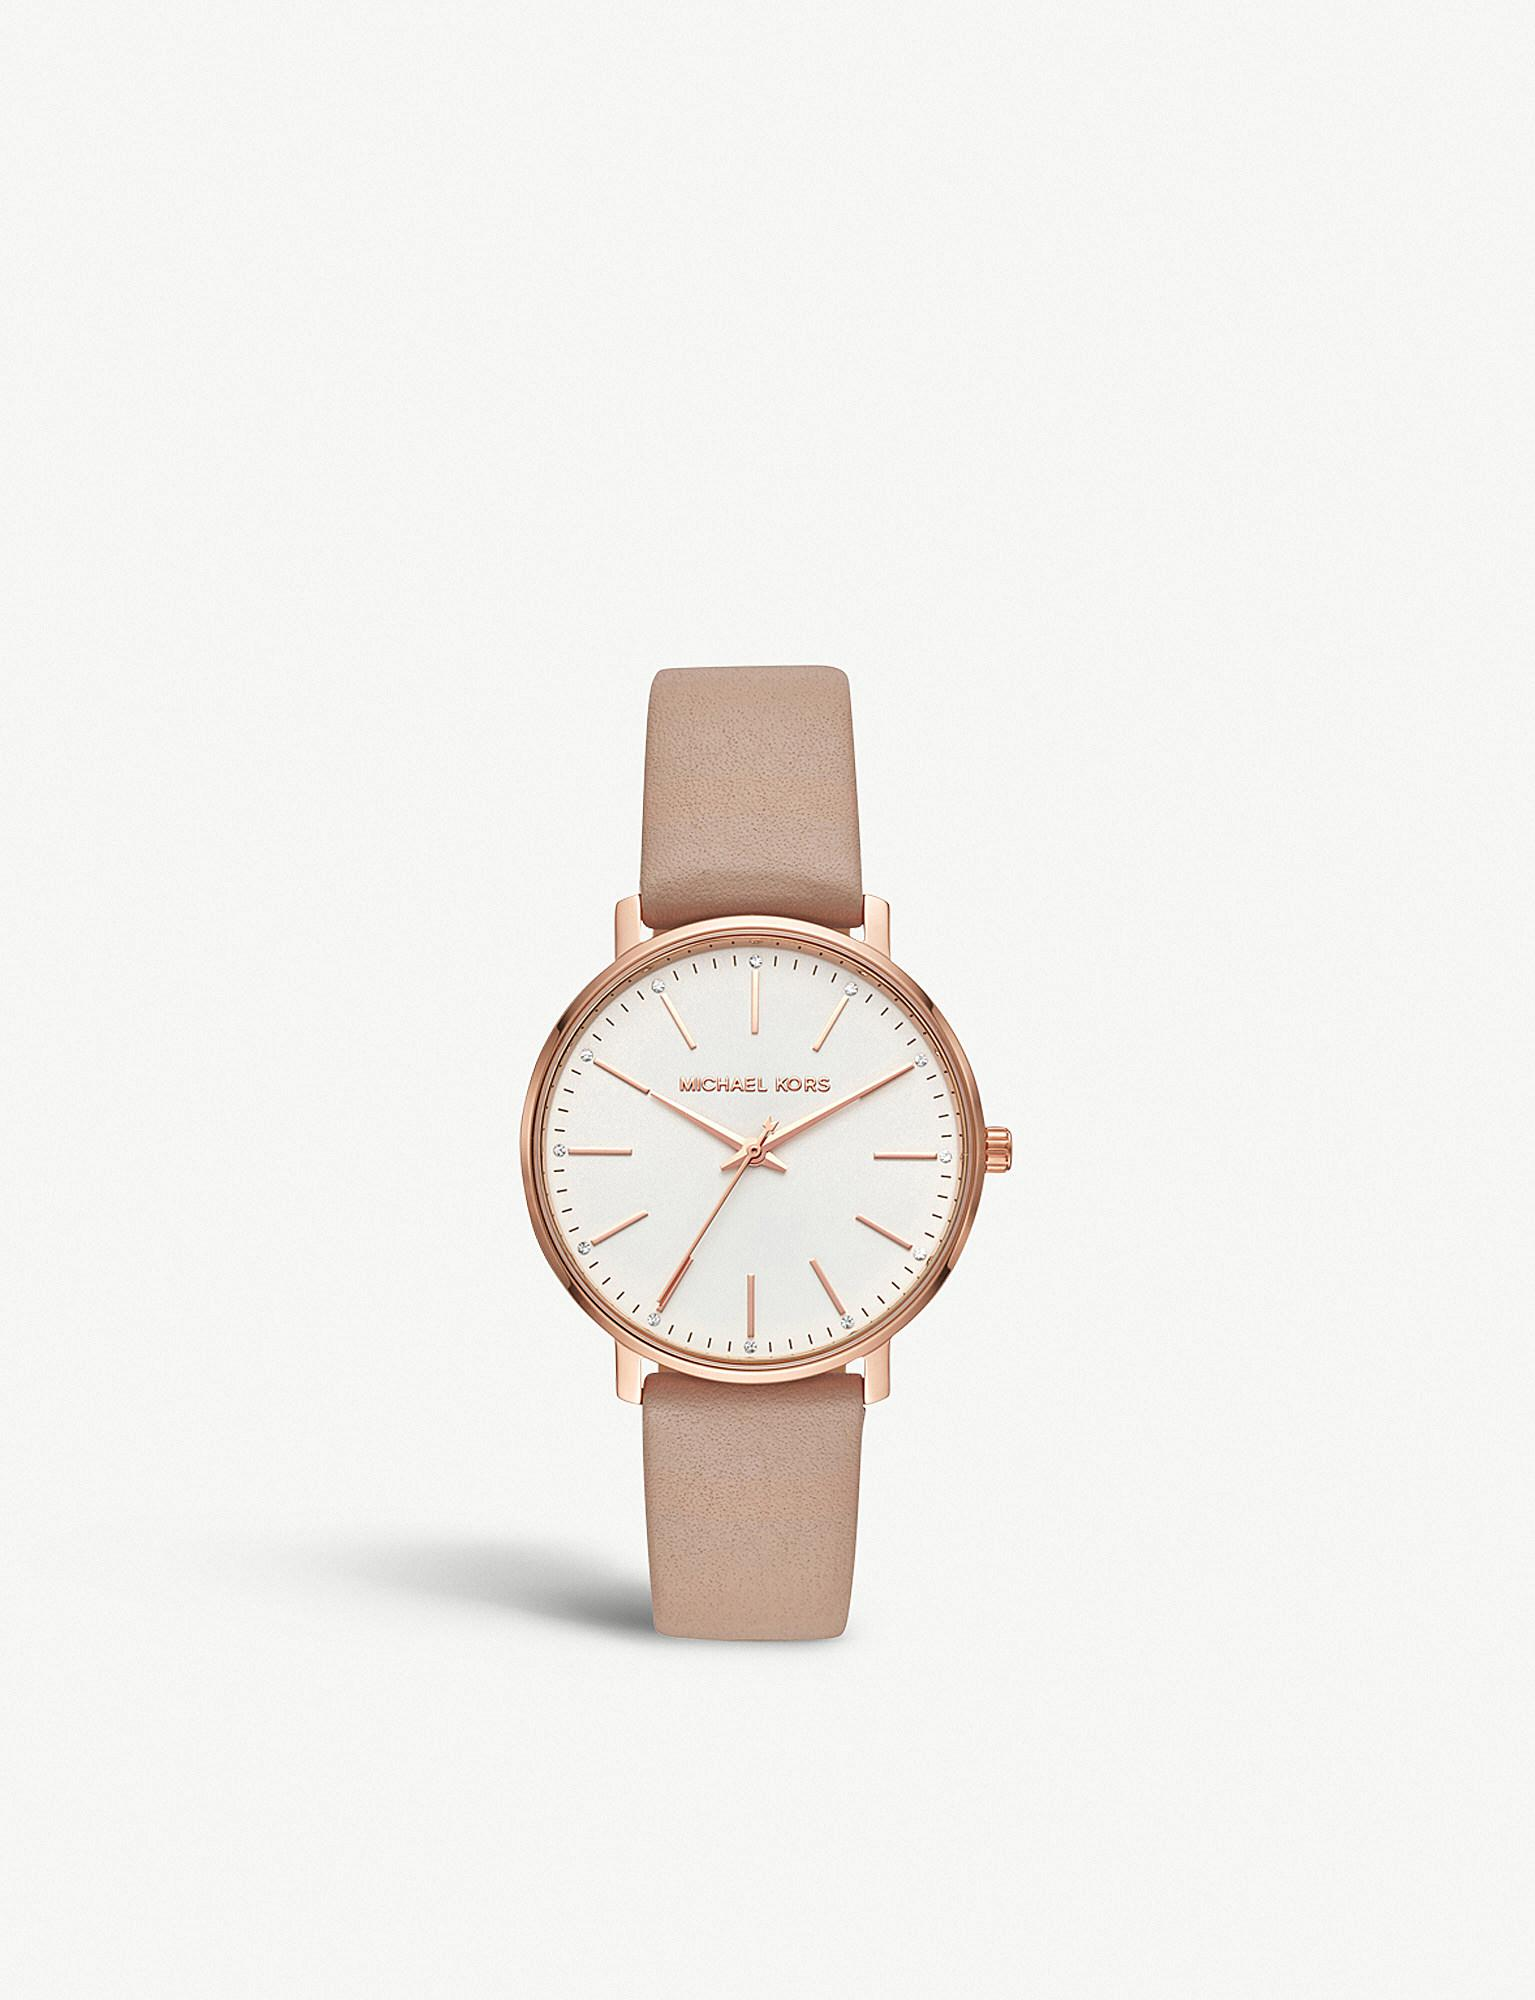 Michael Kors - Metallic Mk2748 Pyper Rose-gold Stainless Steel And Leather  Watch - Lyst. View fullscreen 6662e0c6781